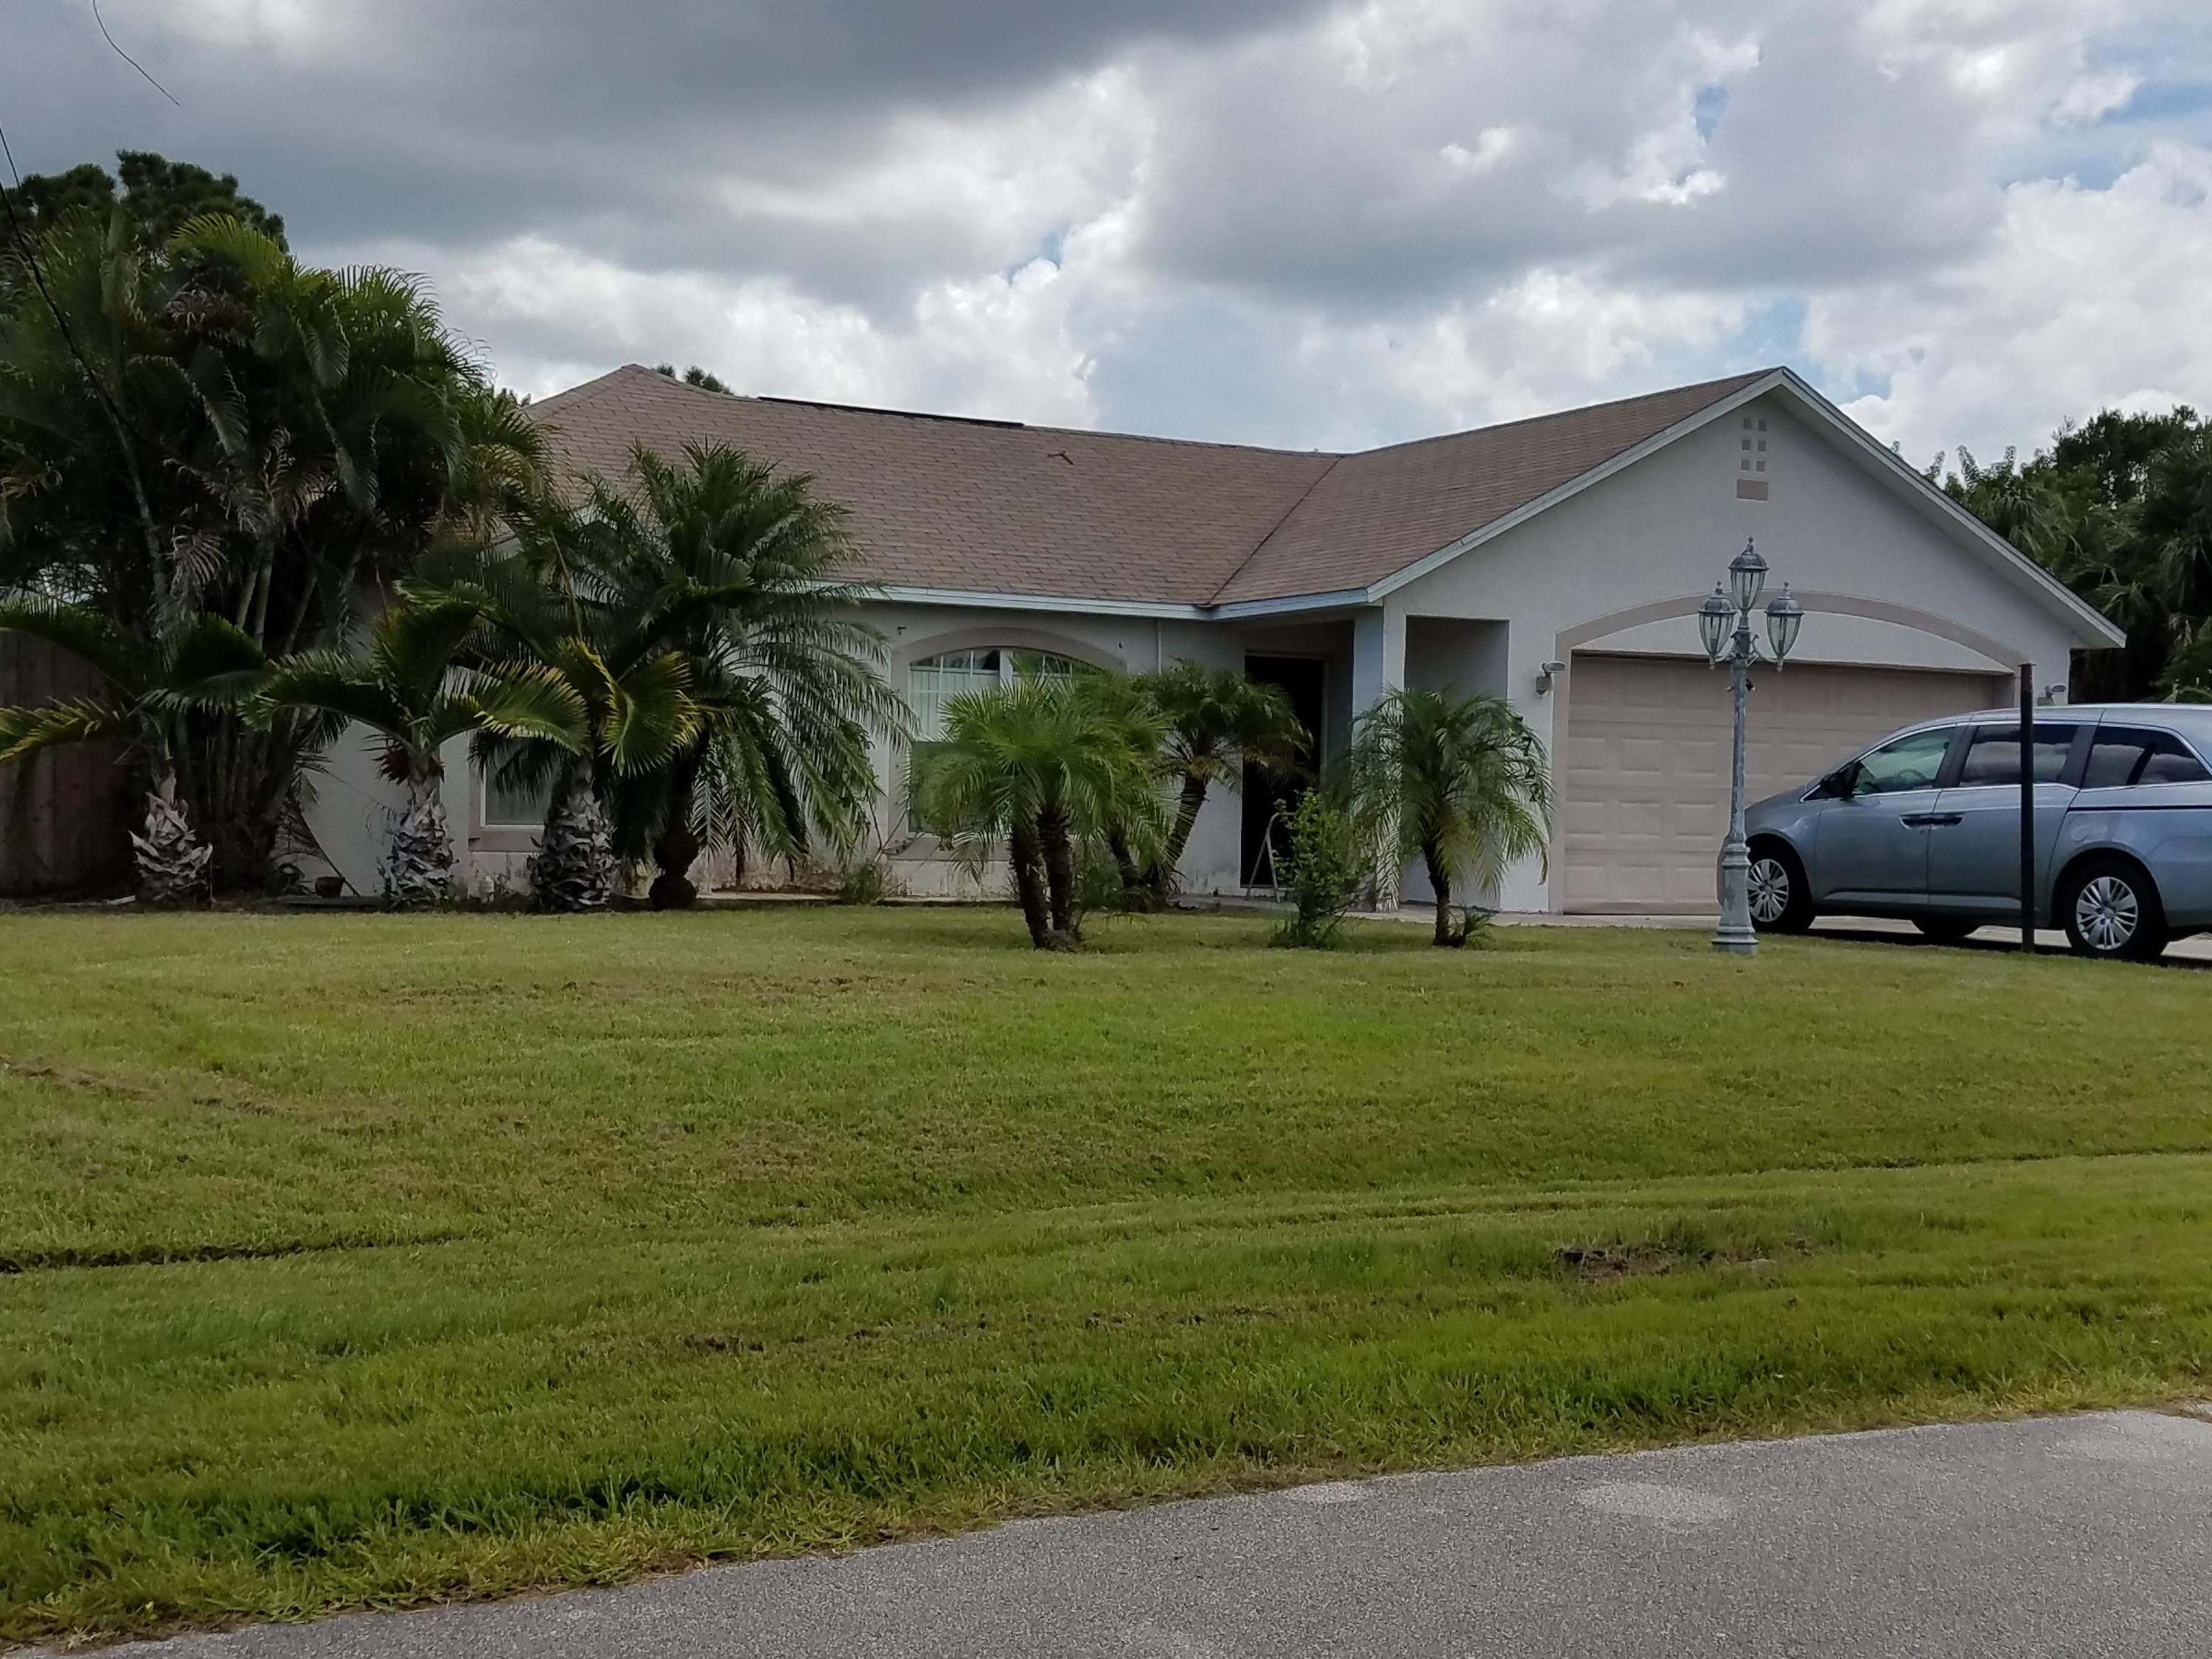 NEED A POOL HOME LOWEST PRICE POOL HOME IN THE DESIRABLE ''TORINO AREA'' WITH 4 BEDROOMS, DONT LET IT PASS YOU T!!!  this 4 bedrooms 2 baths pool home is all fenced-in with mature palm trees, property also has tile throughout home. Walk through French doors which will lead you to a Huge tile covered porch, with cabinets, Kitchen sink area and a gas kitchen stove outside, all this facing the screened enclosed Pool on a cool deck.  OH! and lets not forget New AC unit (outside and inside) just installed in November 2016 and property has a permitted permanent shed. ALL MEASUREMENTS ARE APPROXIMATE AND MUST BE VERIFIED.